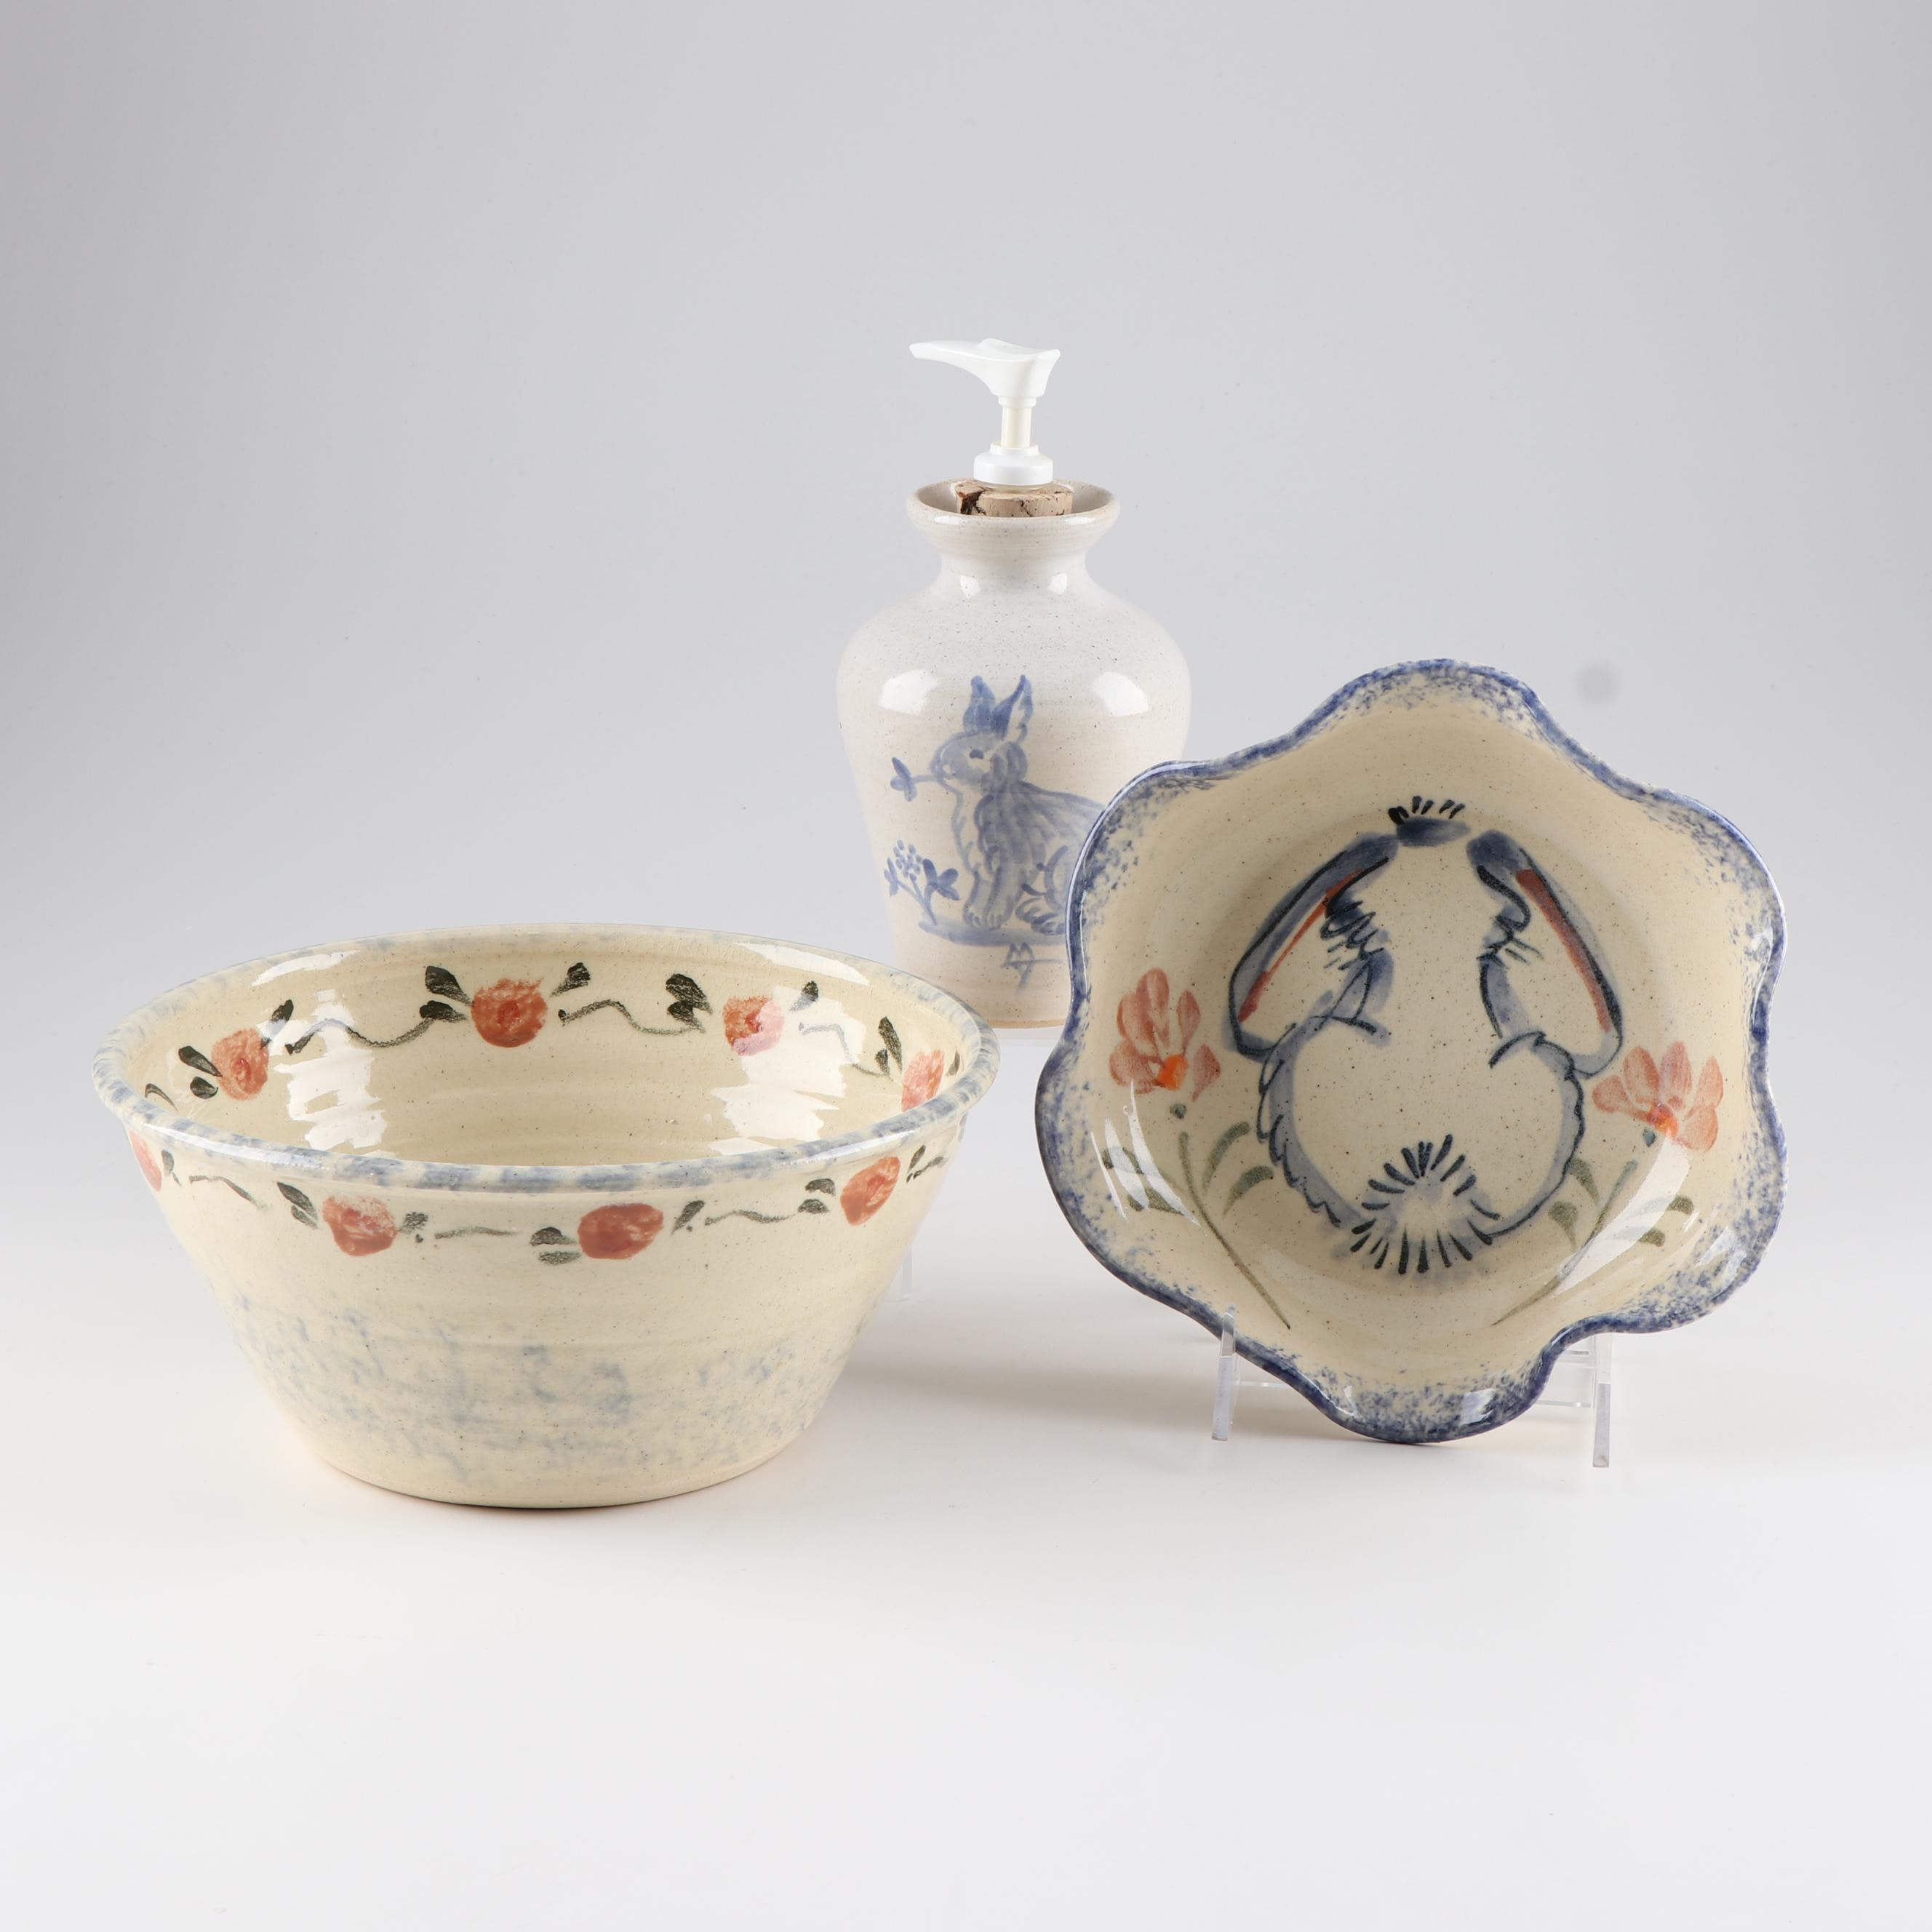 Wheel Thrown Bowls and Soap Dispenser Featuring Backwoods Pottery with Bunnies